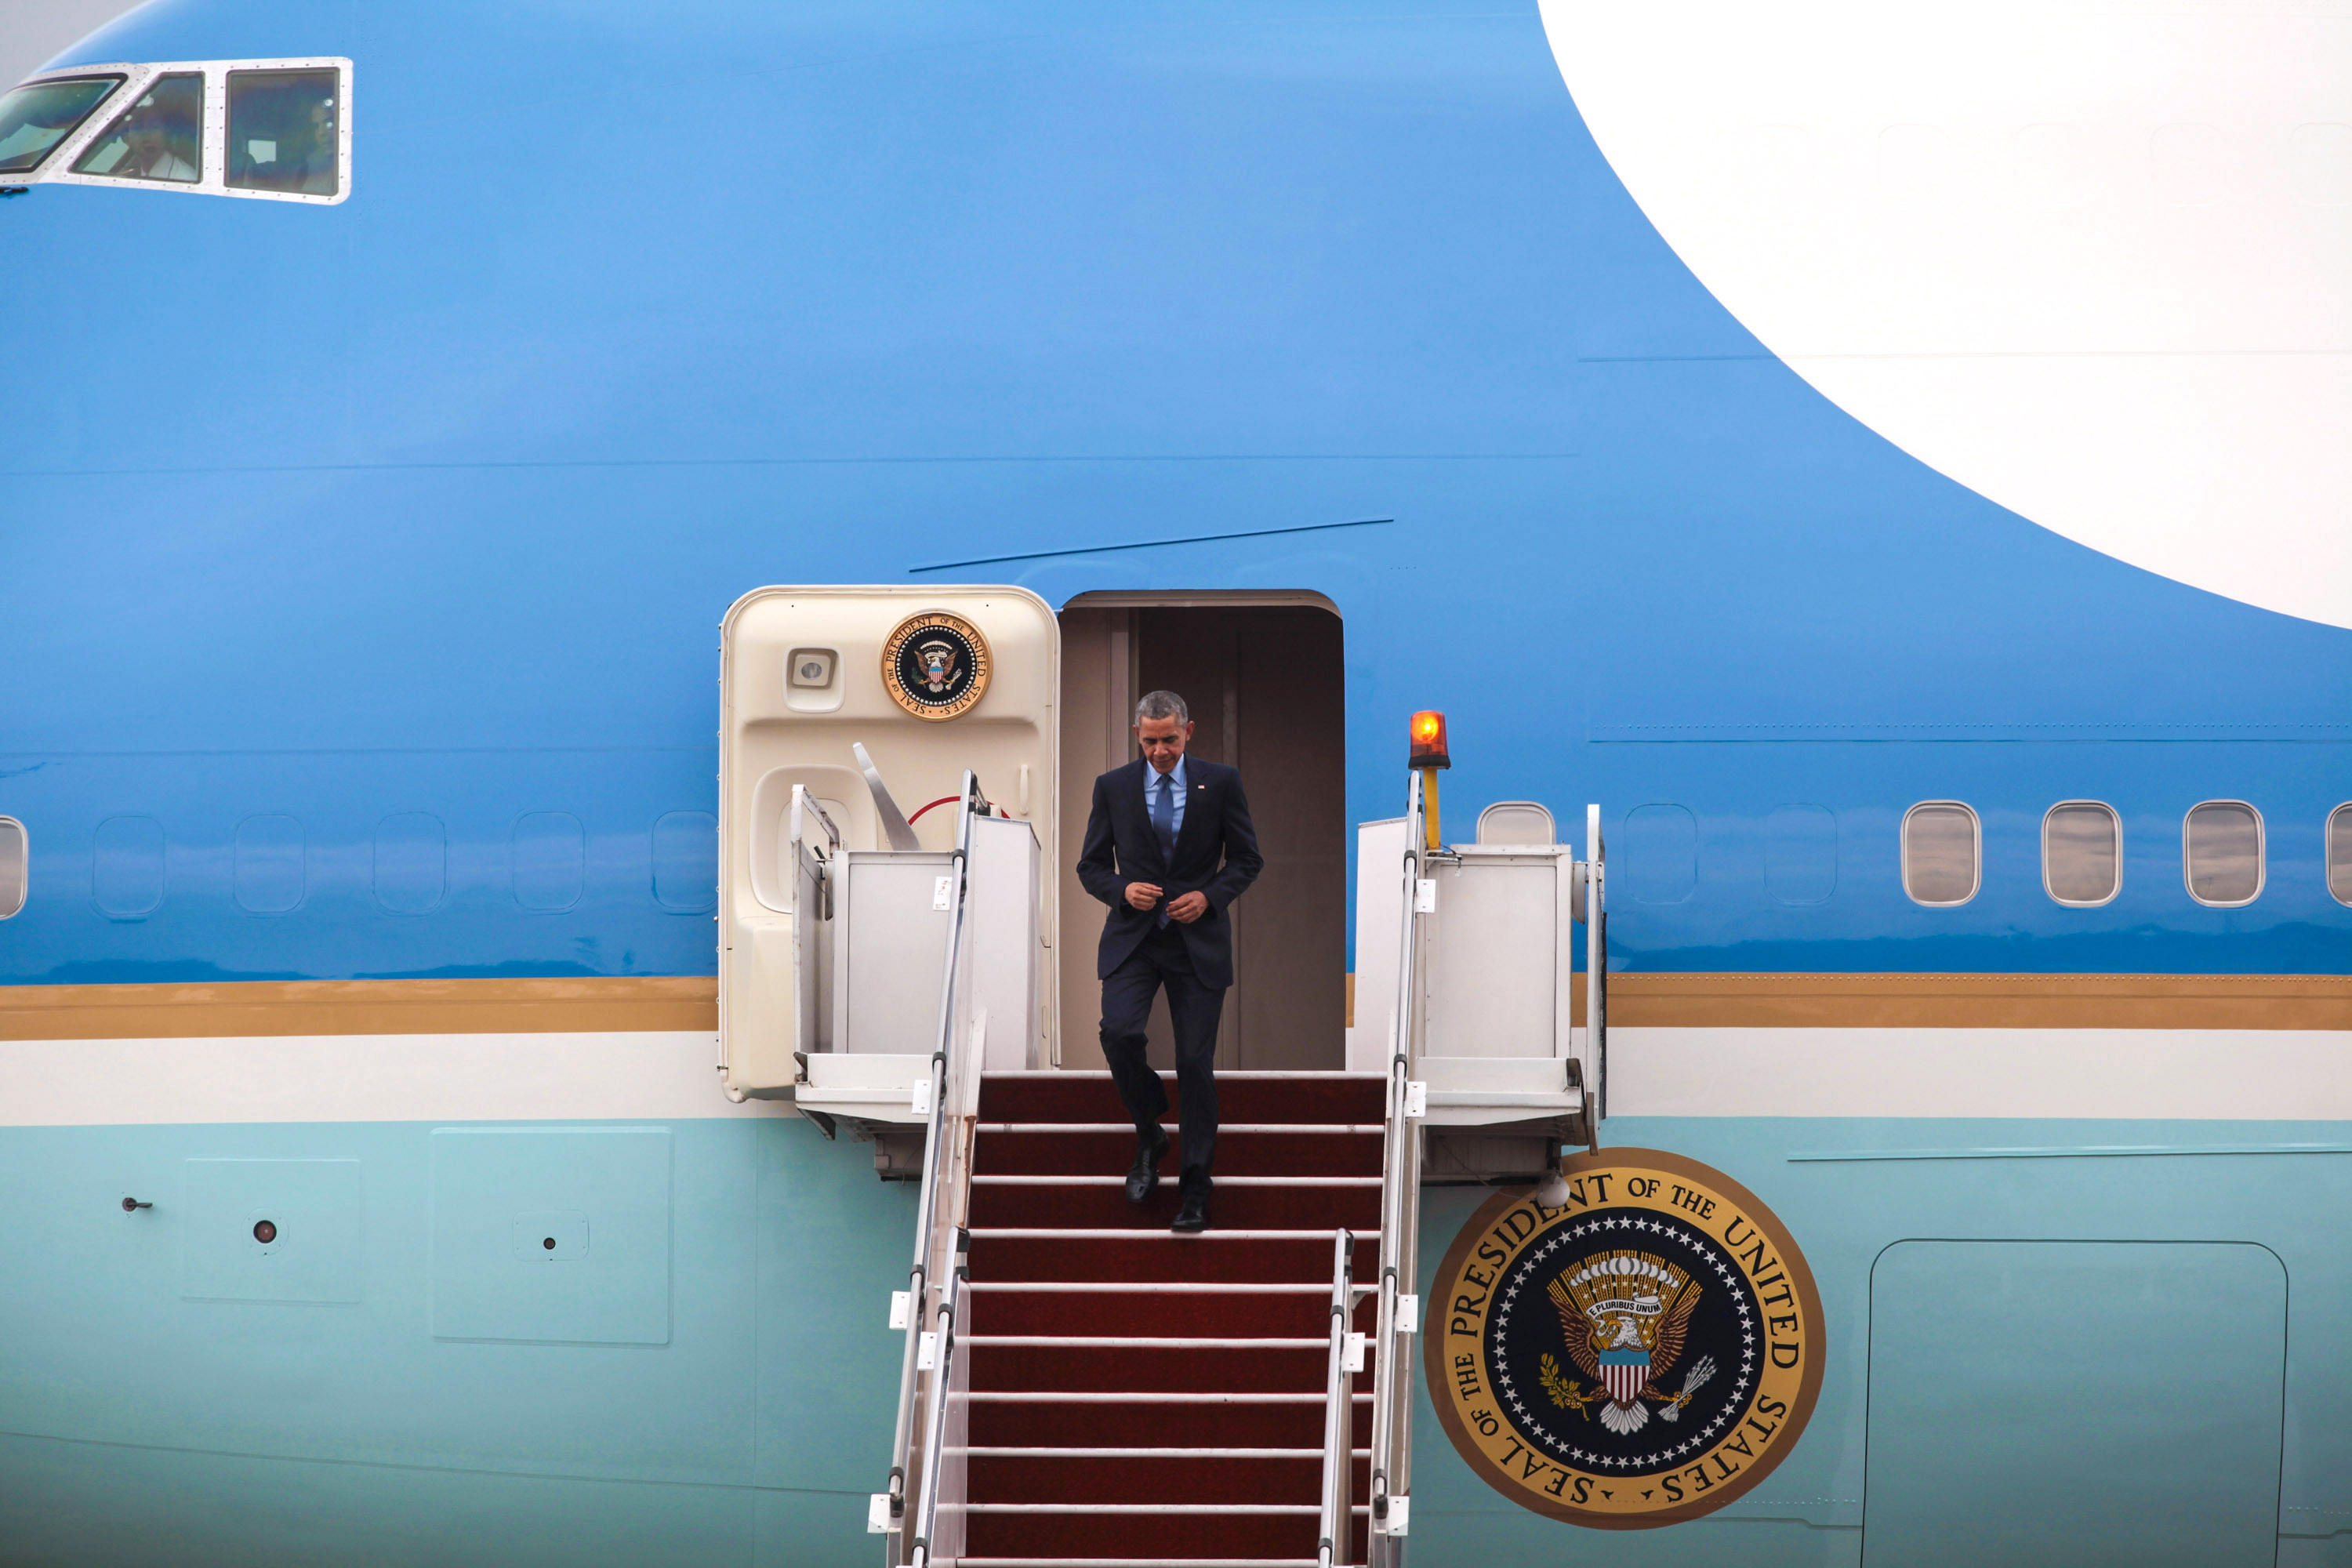 Il presidente Obama durante una visita in Malesia. Dietro l'Air Force One © Mohd Samsul Mohd Said/Getty Images